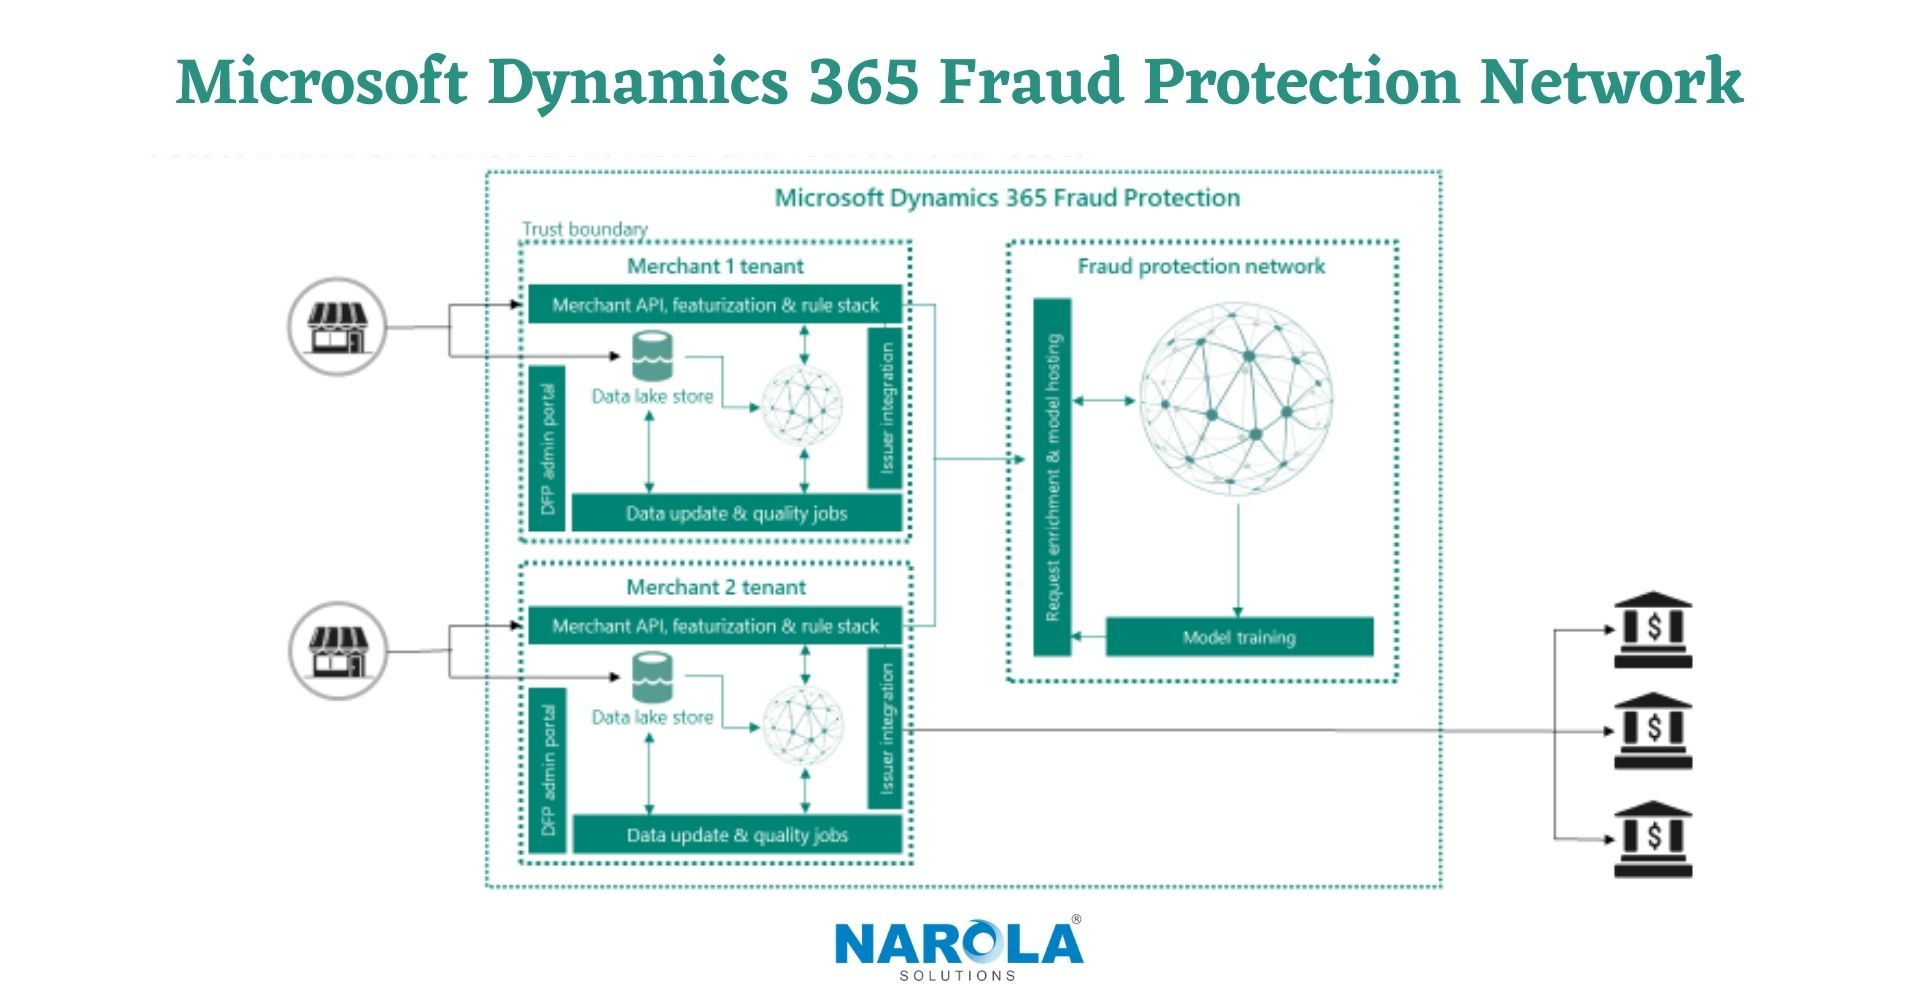 Microsoft Dynamics 365 Fraud Protection Network